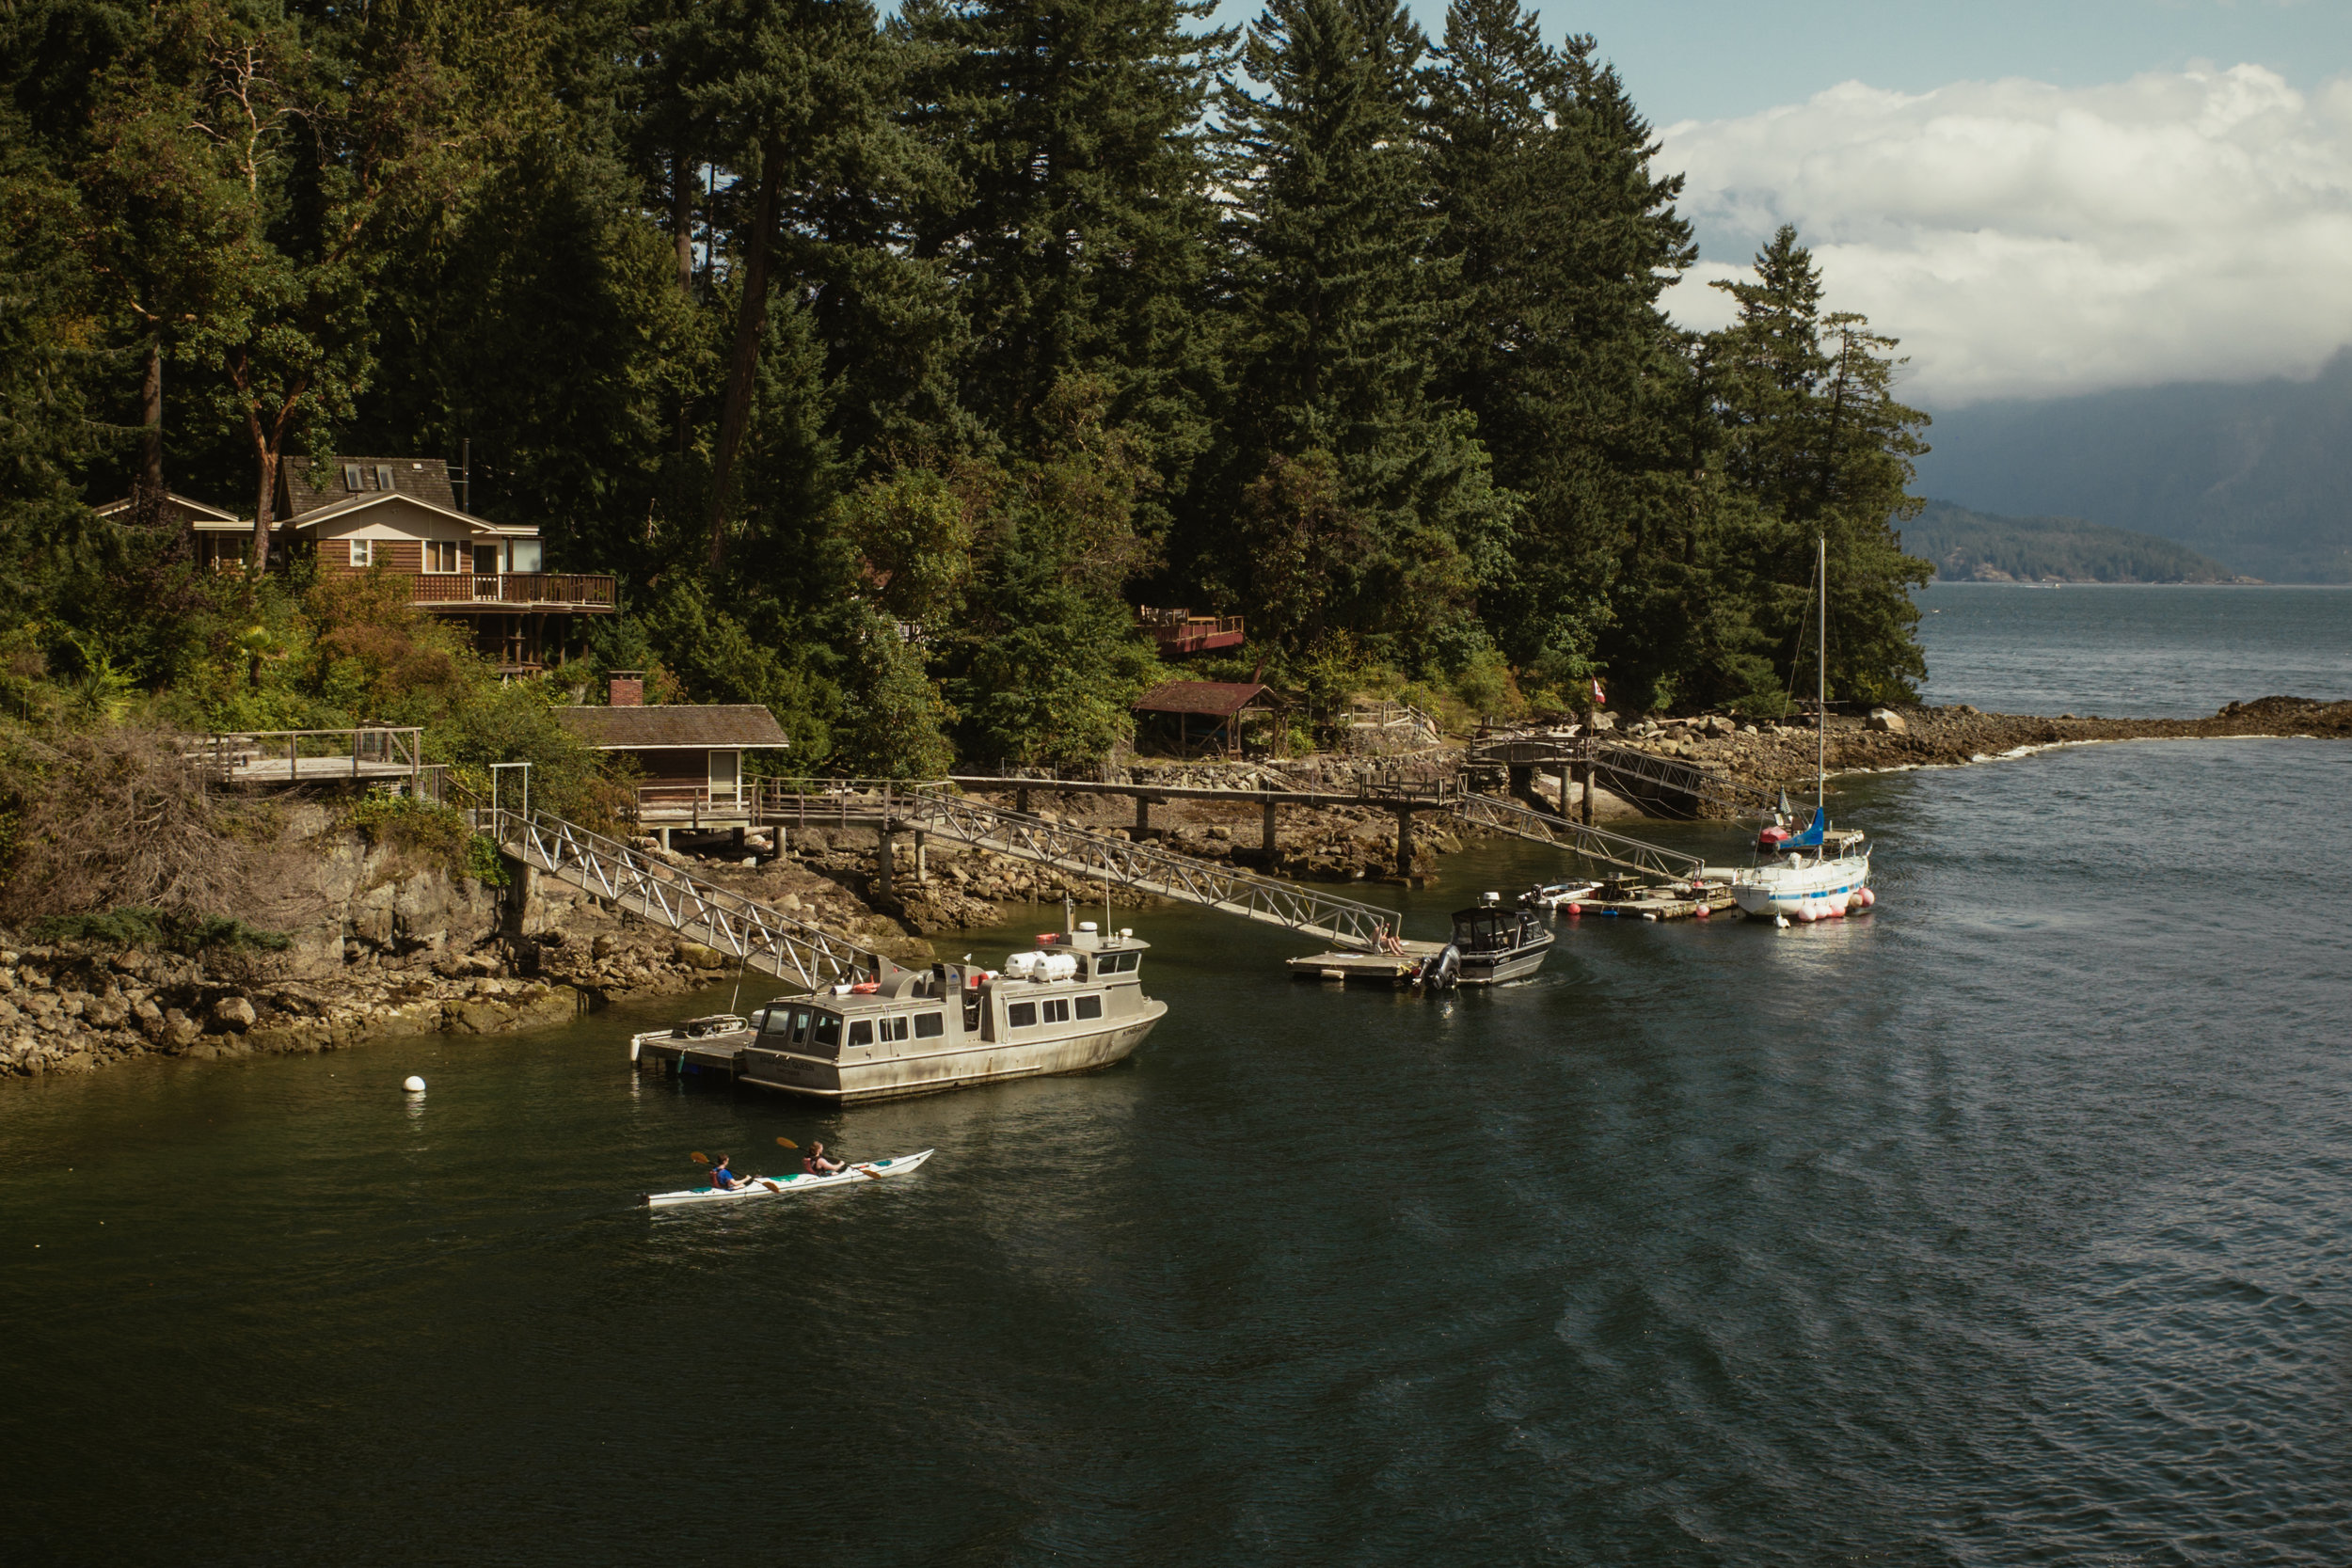 A quick arrival onto Bowen Island's shores, lined with quintessentially quaint island houses, surrounded by glorious trees, docks and boats, just steps away.